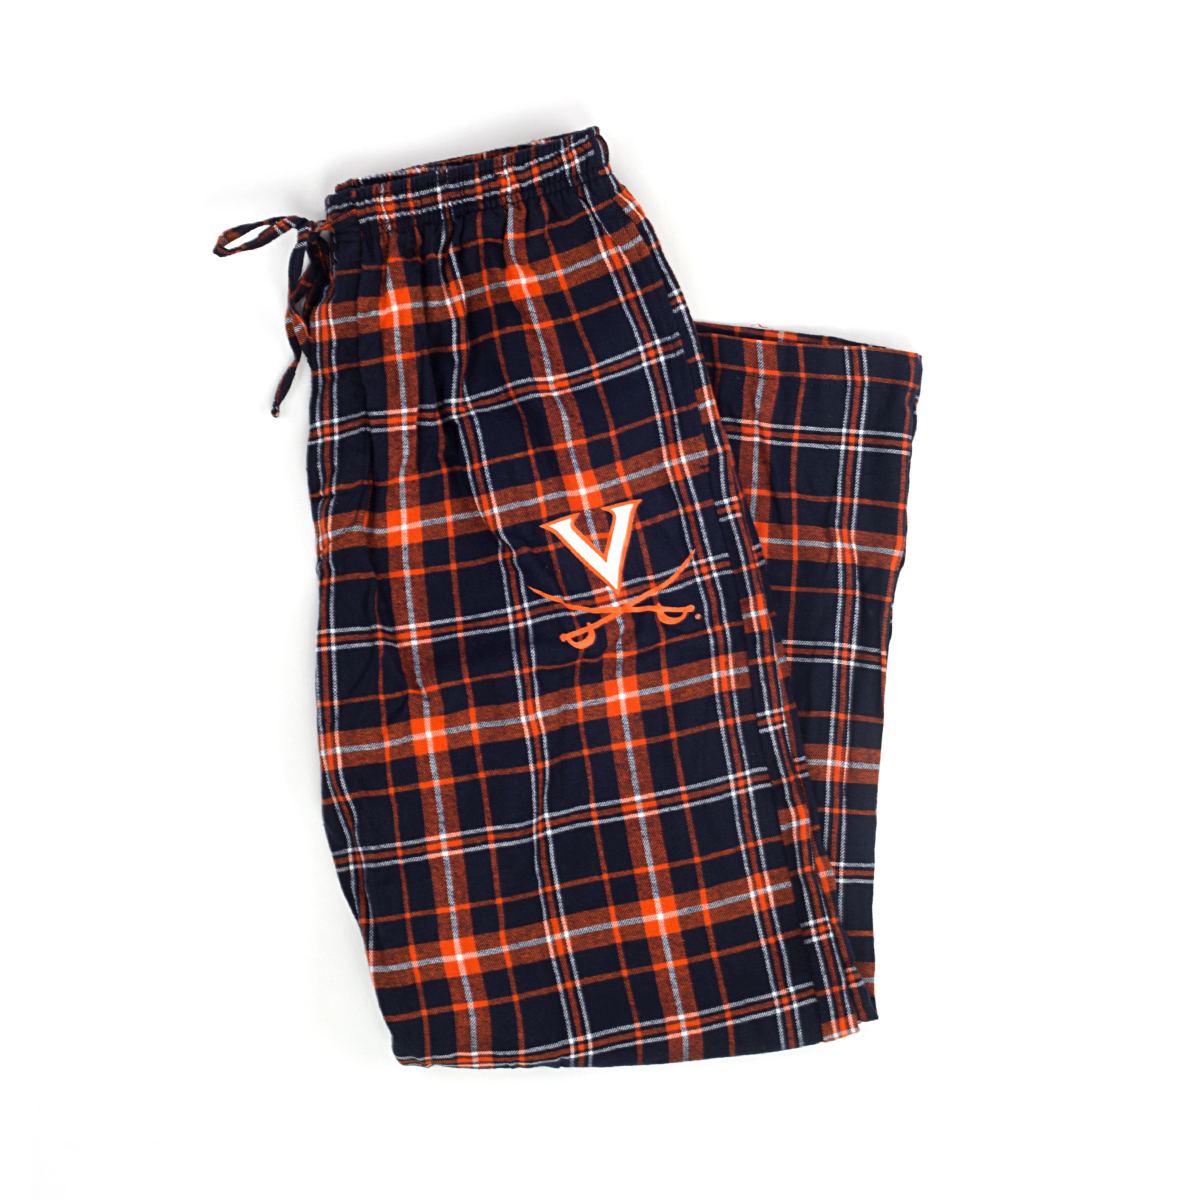 University of Virginia Cavaliers Flannel Sleep Pant